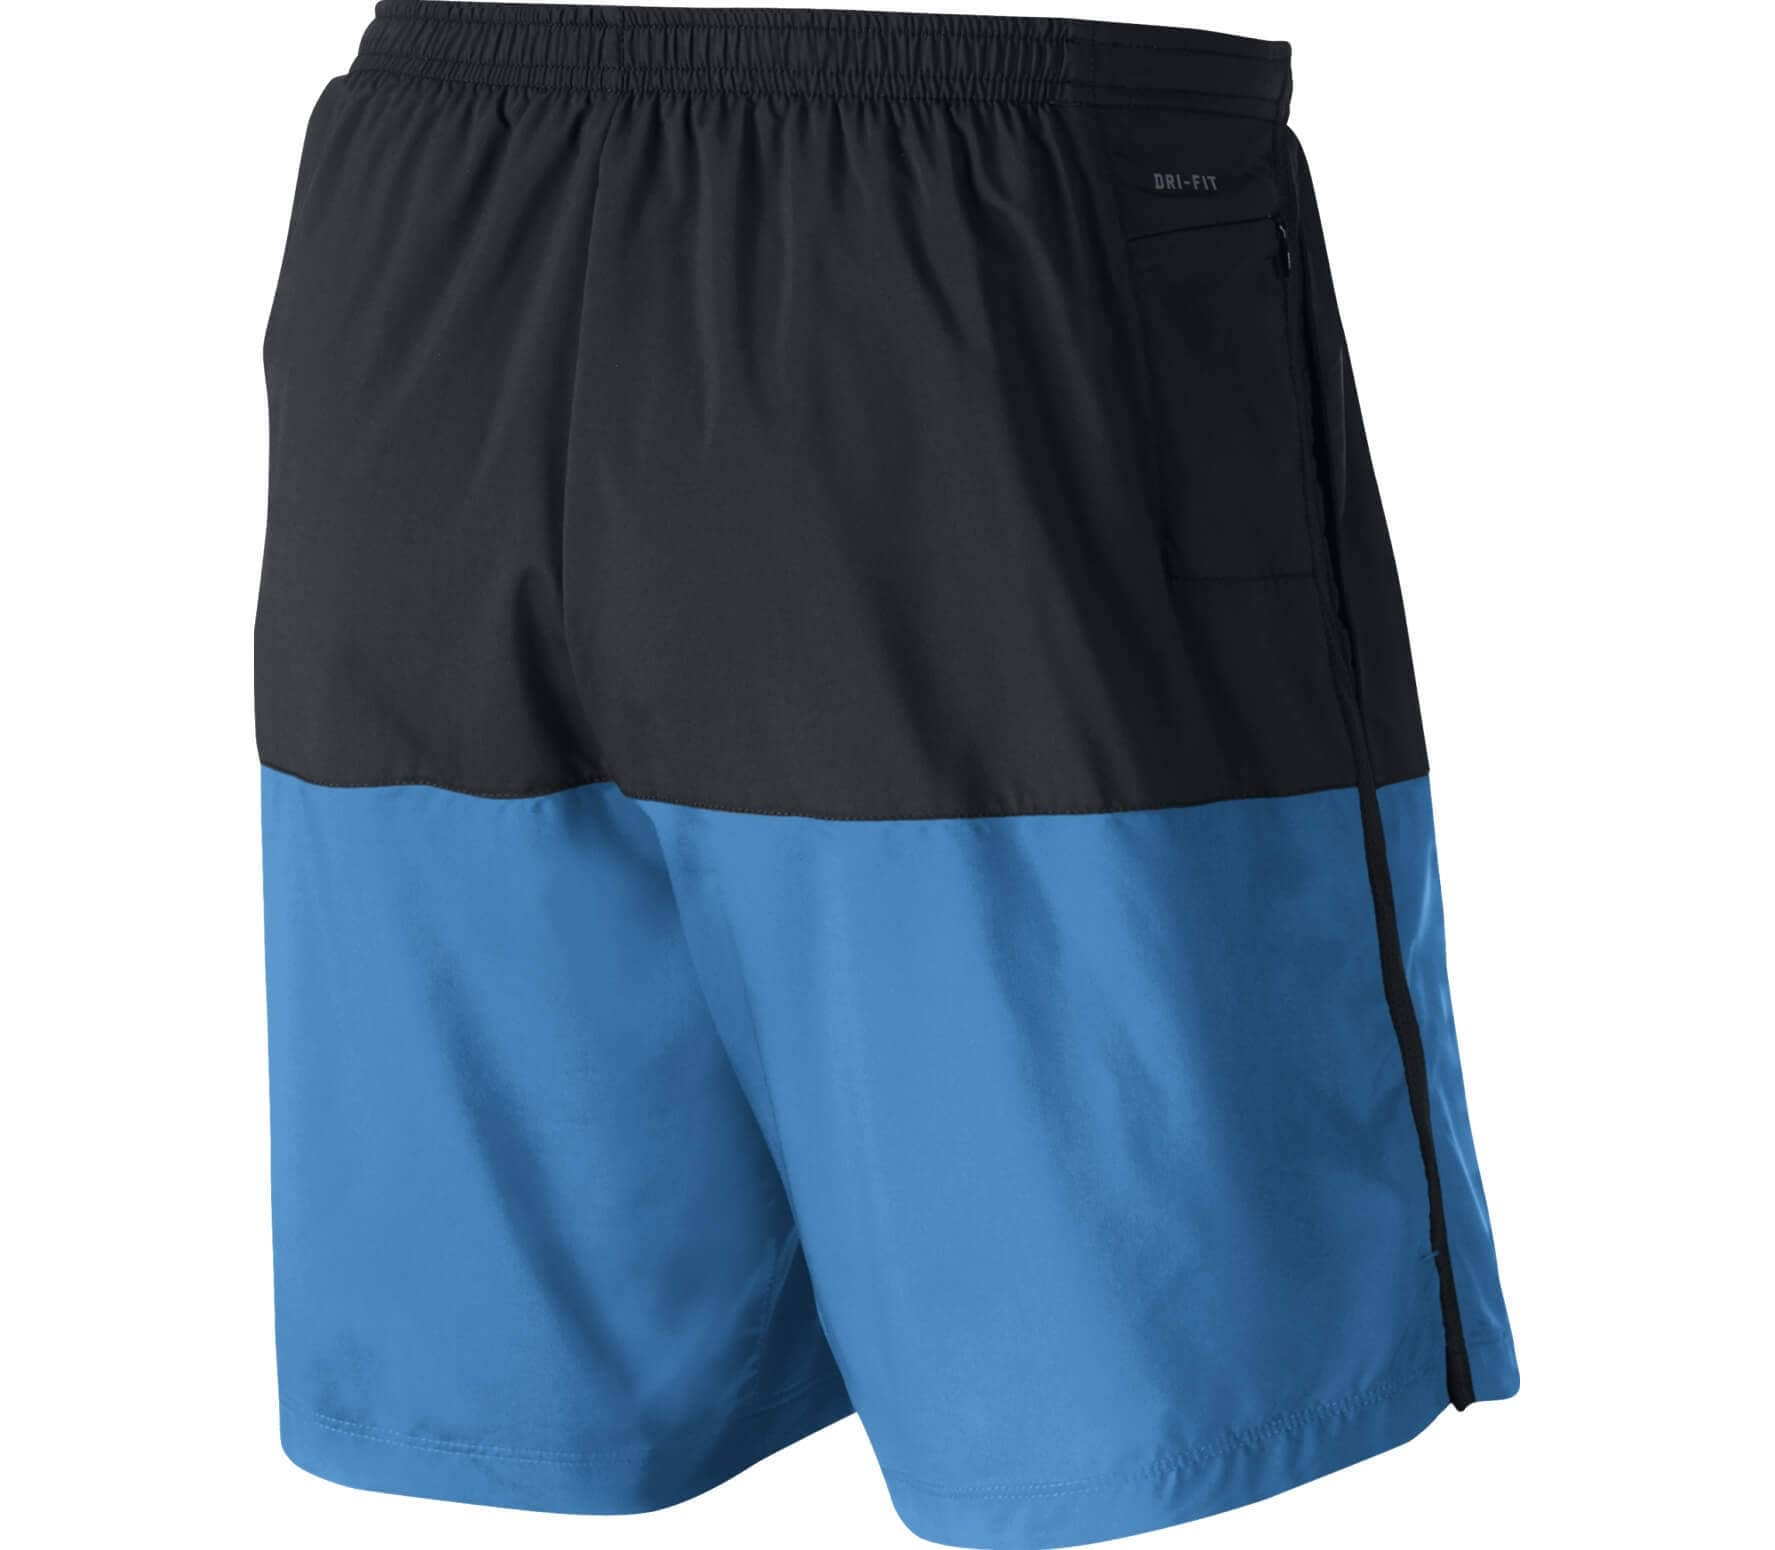 5f9cd7e22dde2 Nike - 7 Inch Flex Distance men s running shorts (black blue) - buy ...